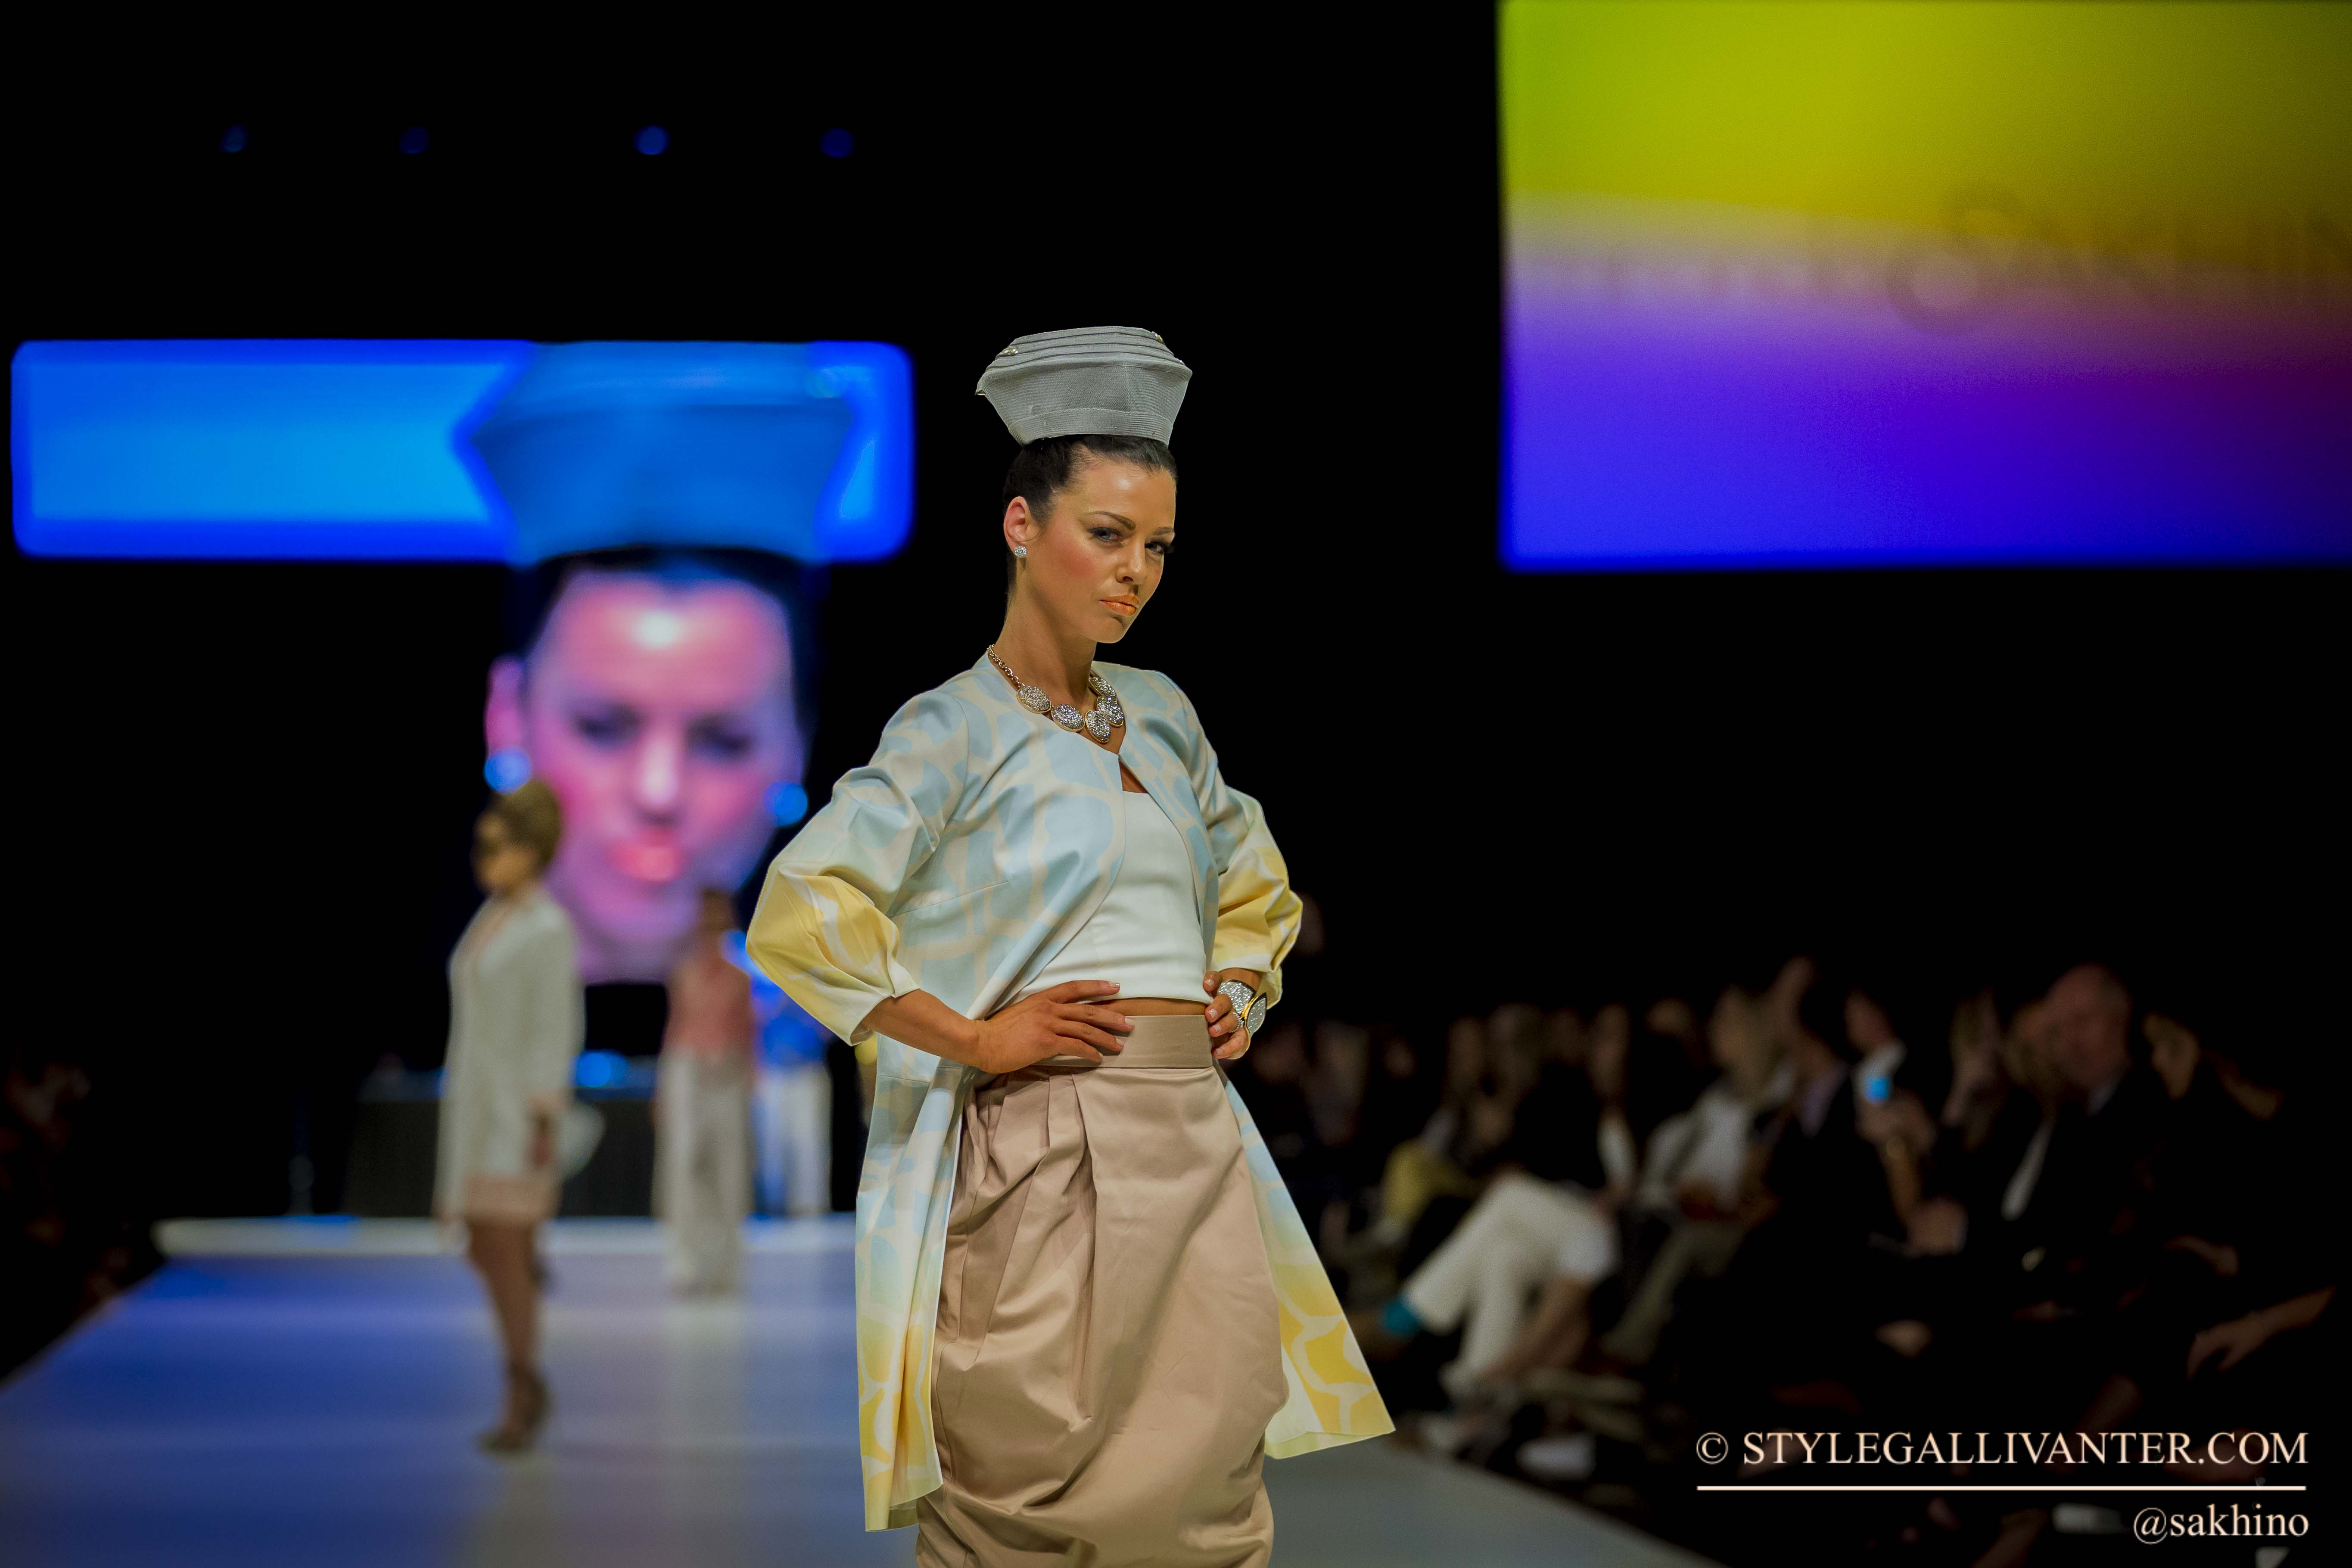 mirandaSAKHINO-copyright-2015_not-to-be-used-without-permission_mirandasakhino-runway-2015_mirandasakhino-fashfest-miranda-sakhino-resort-collection_miranda-sakhino-fashfest-9